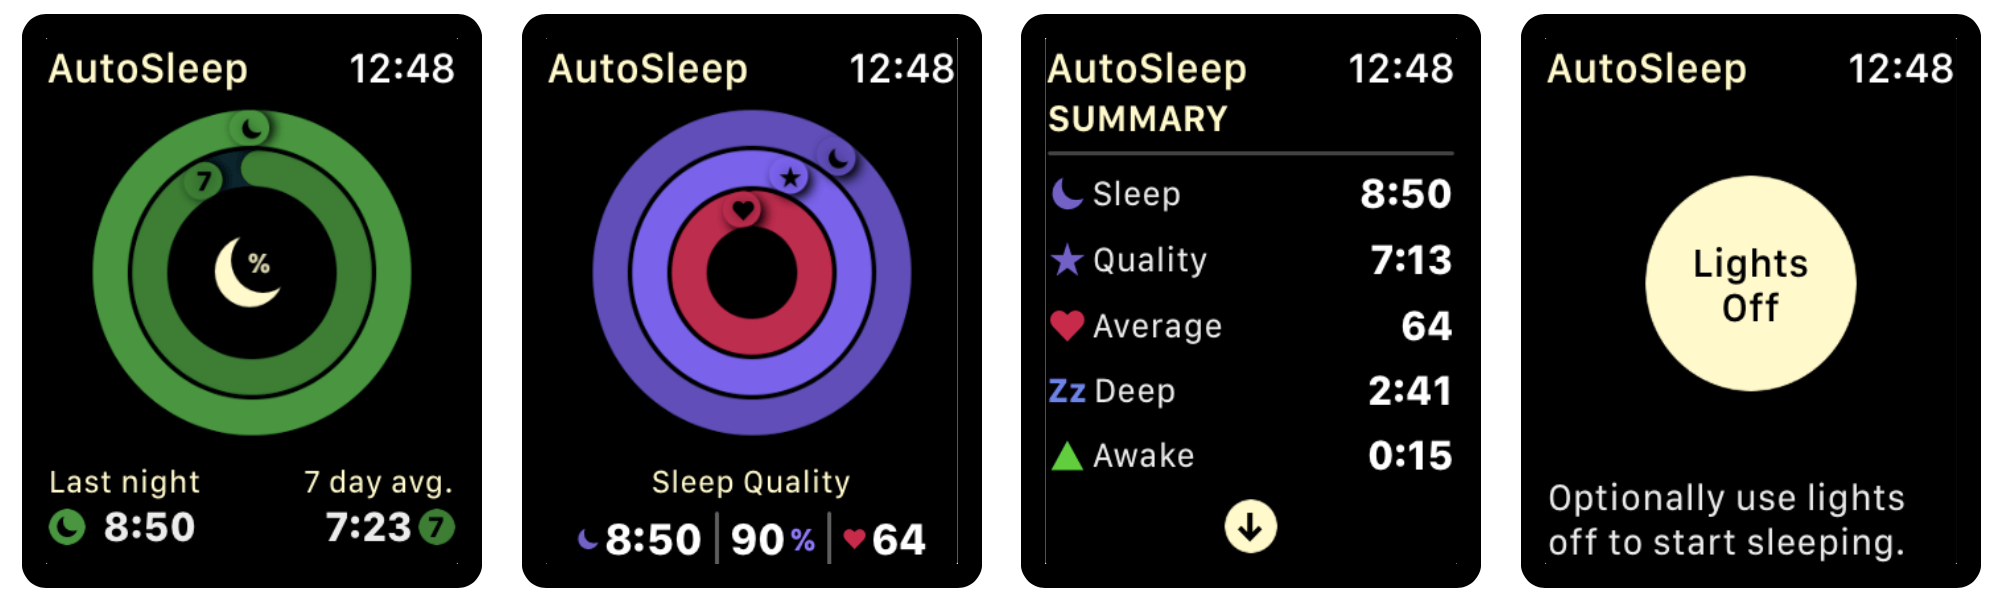 AutoSleep, the best app for monitoring sleep with the Apple Watch